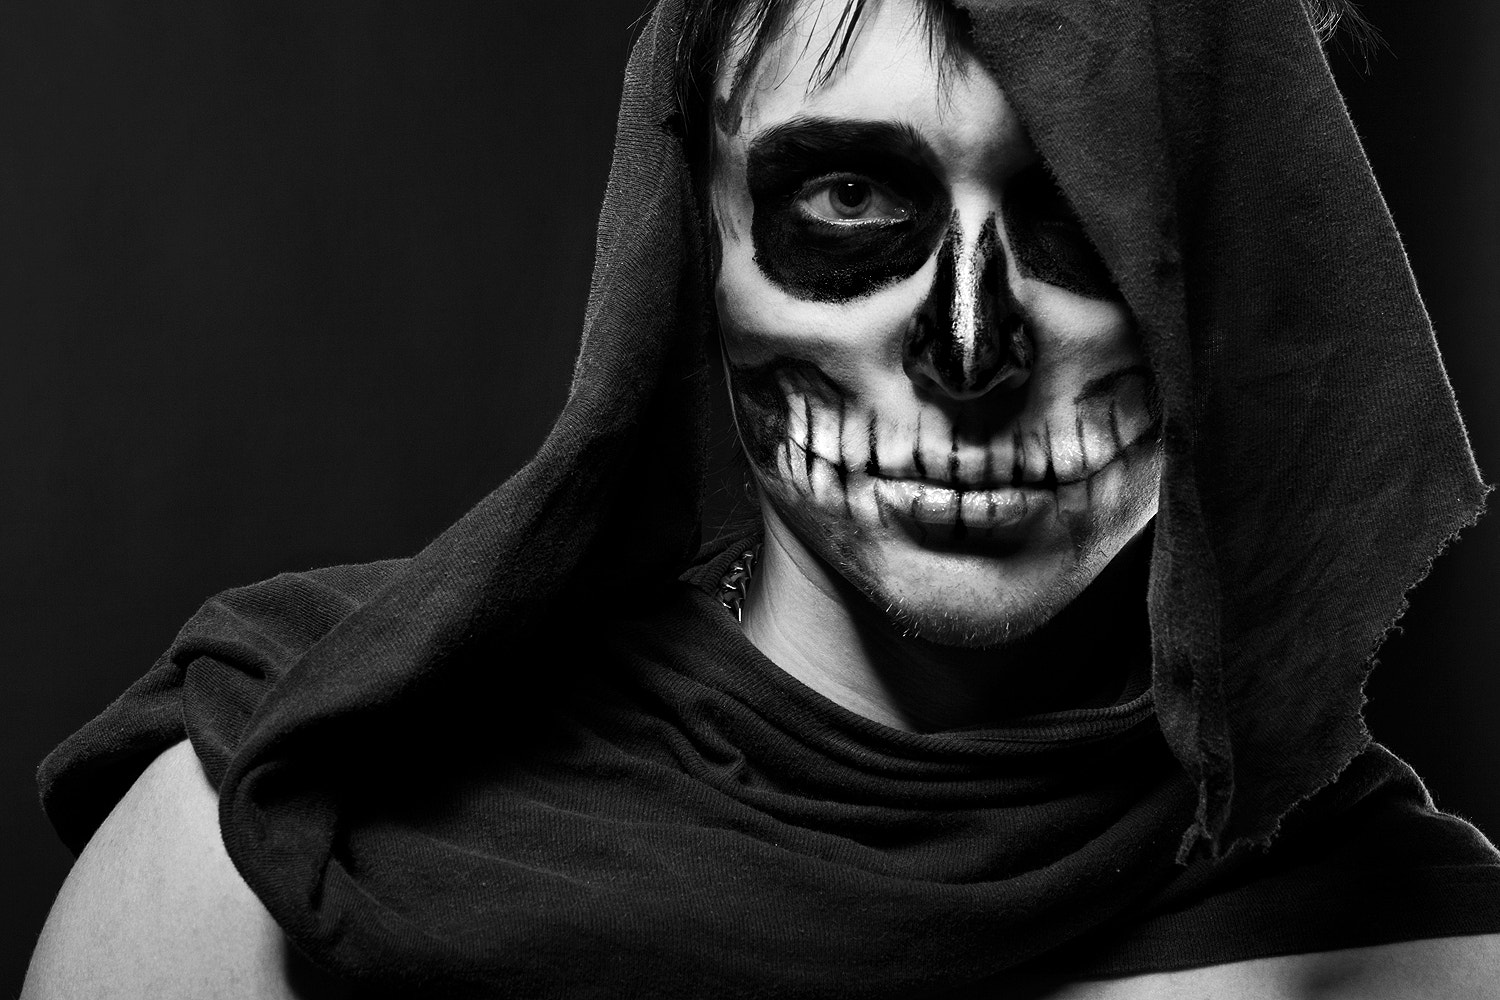 Photograph The Skull Man by Alina Gorn on 500px